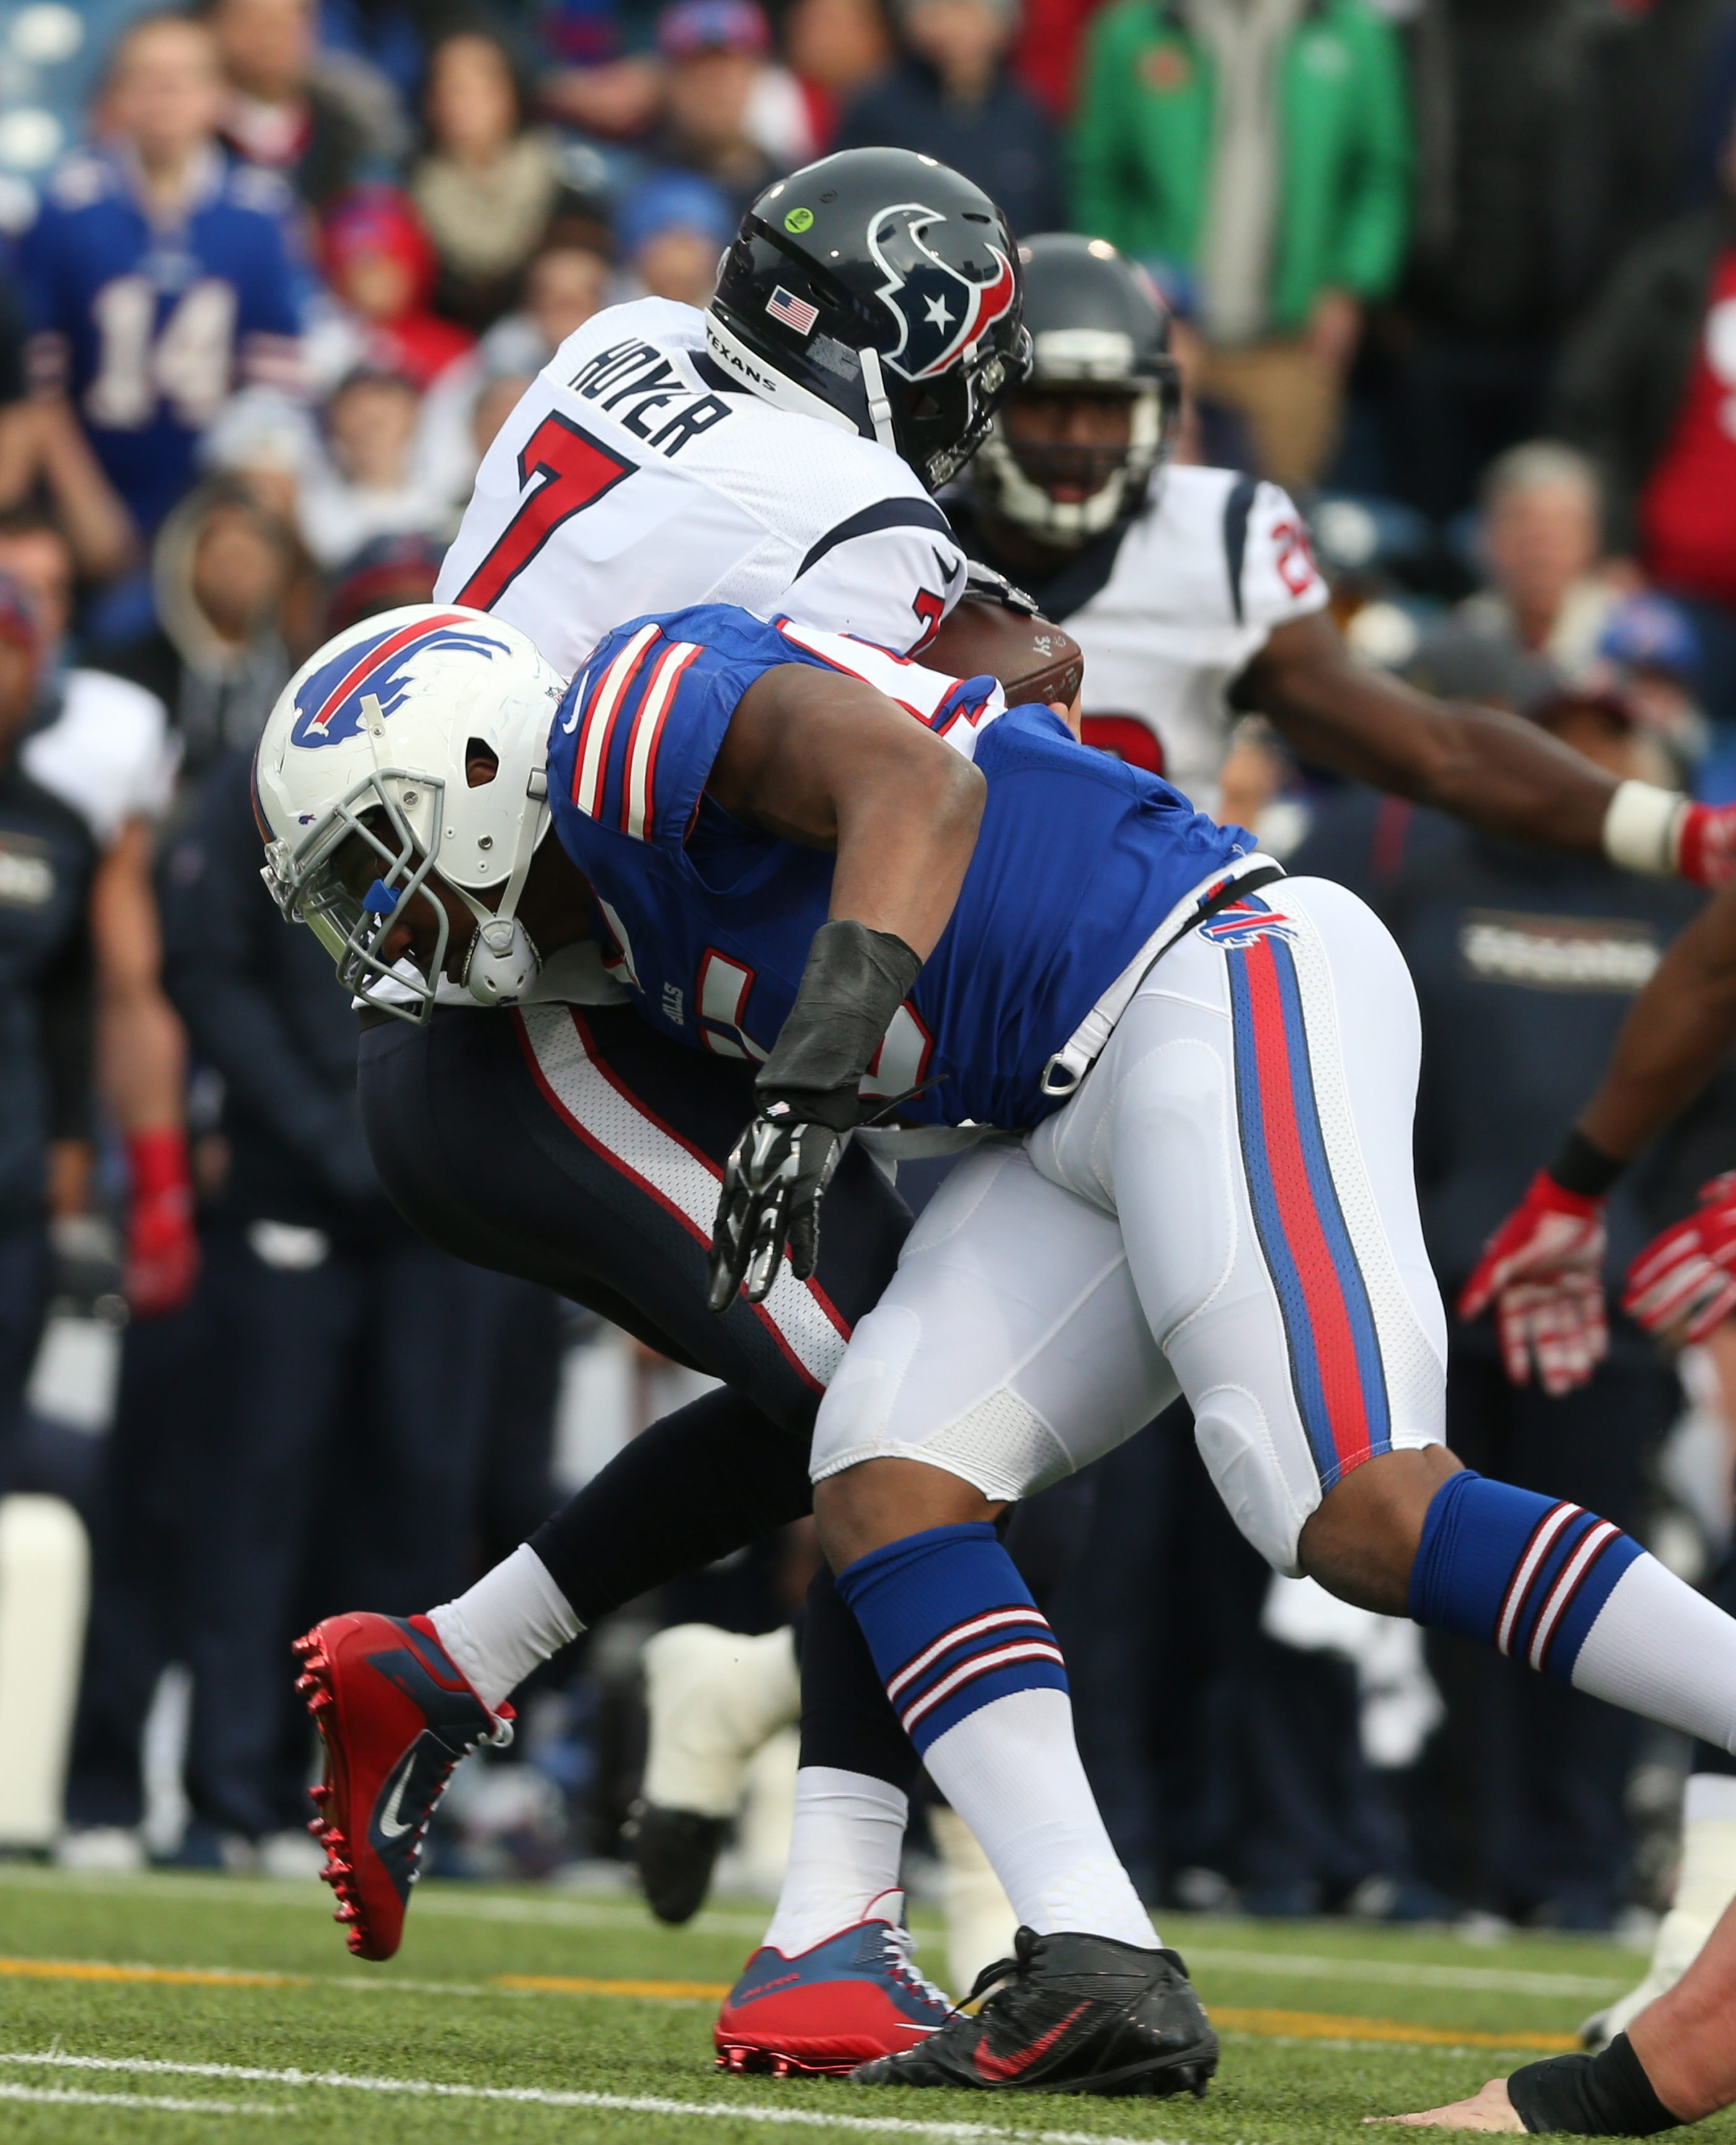 Bills defensive end Jerry Hughes didn't jump the gun when he sacked Texans quarterback Brian Hoyer during Buffalo's win on Dec. 6.